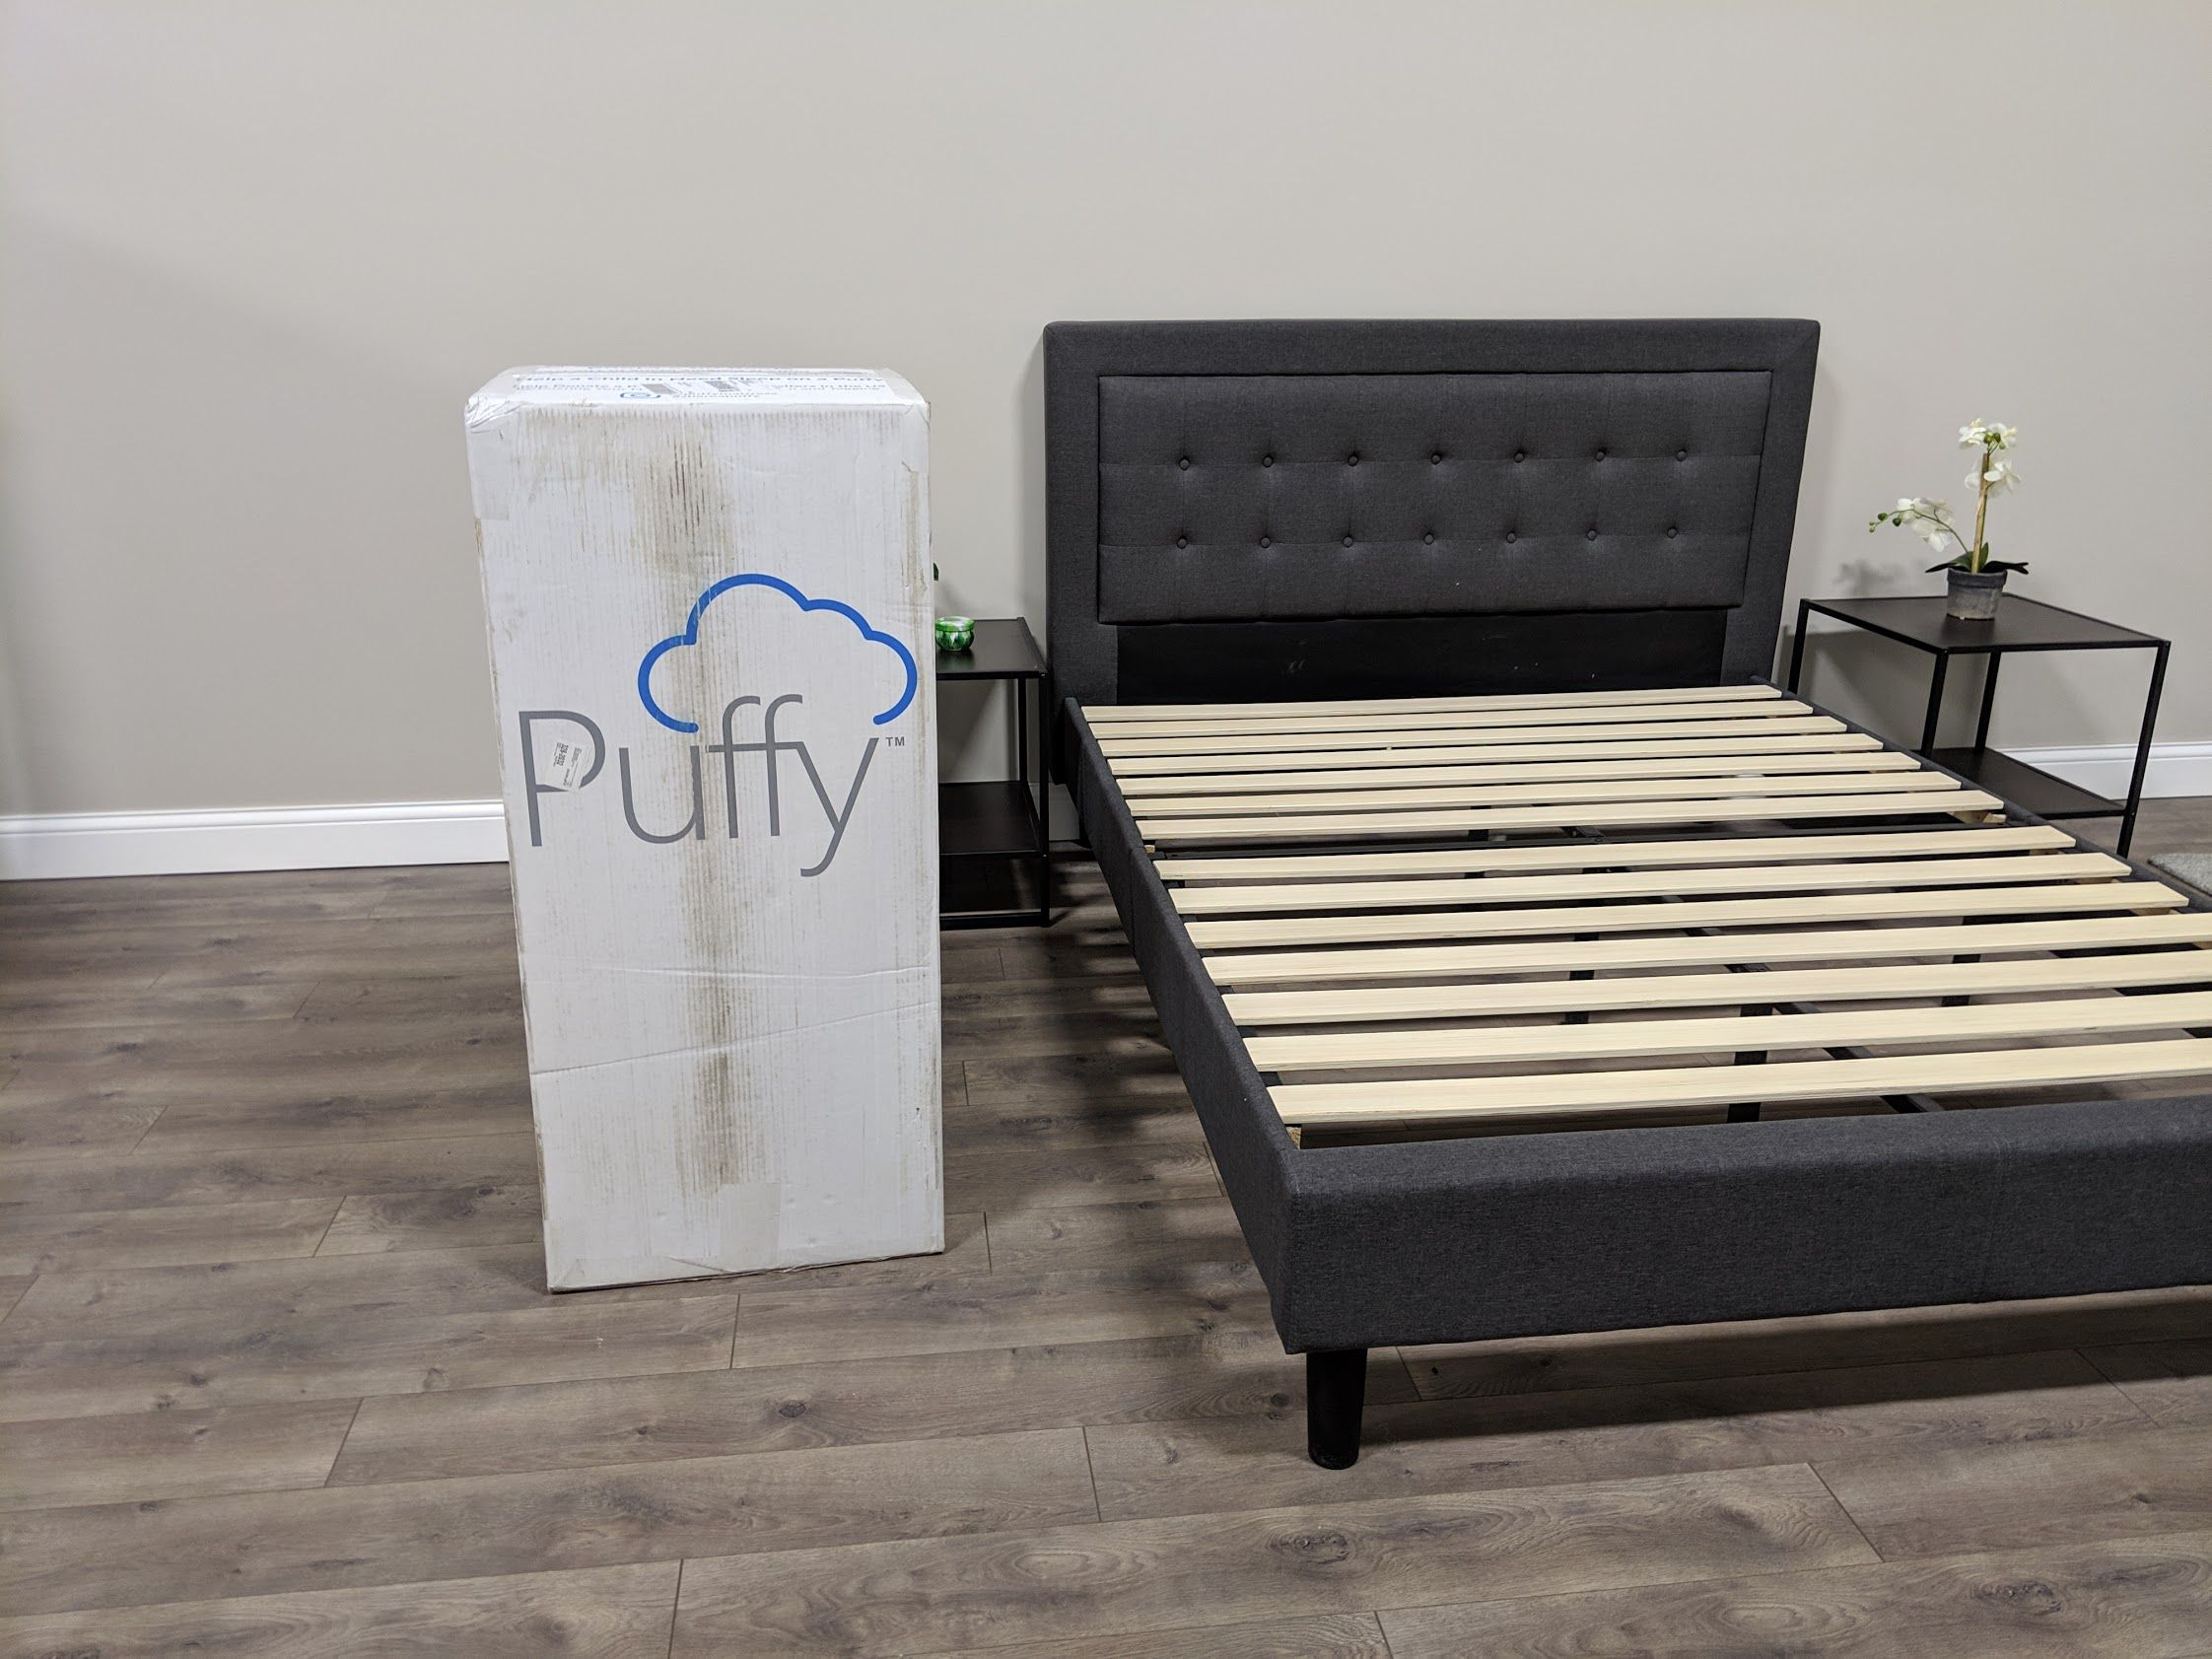 Puffy Mattress Review Does it Live up to the Hype